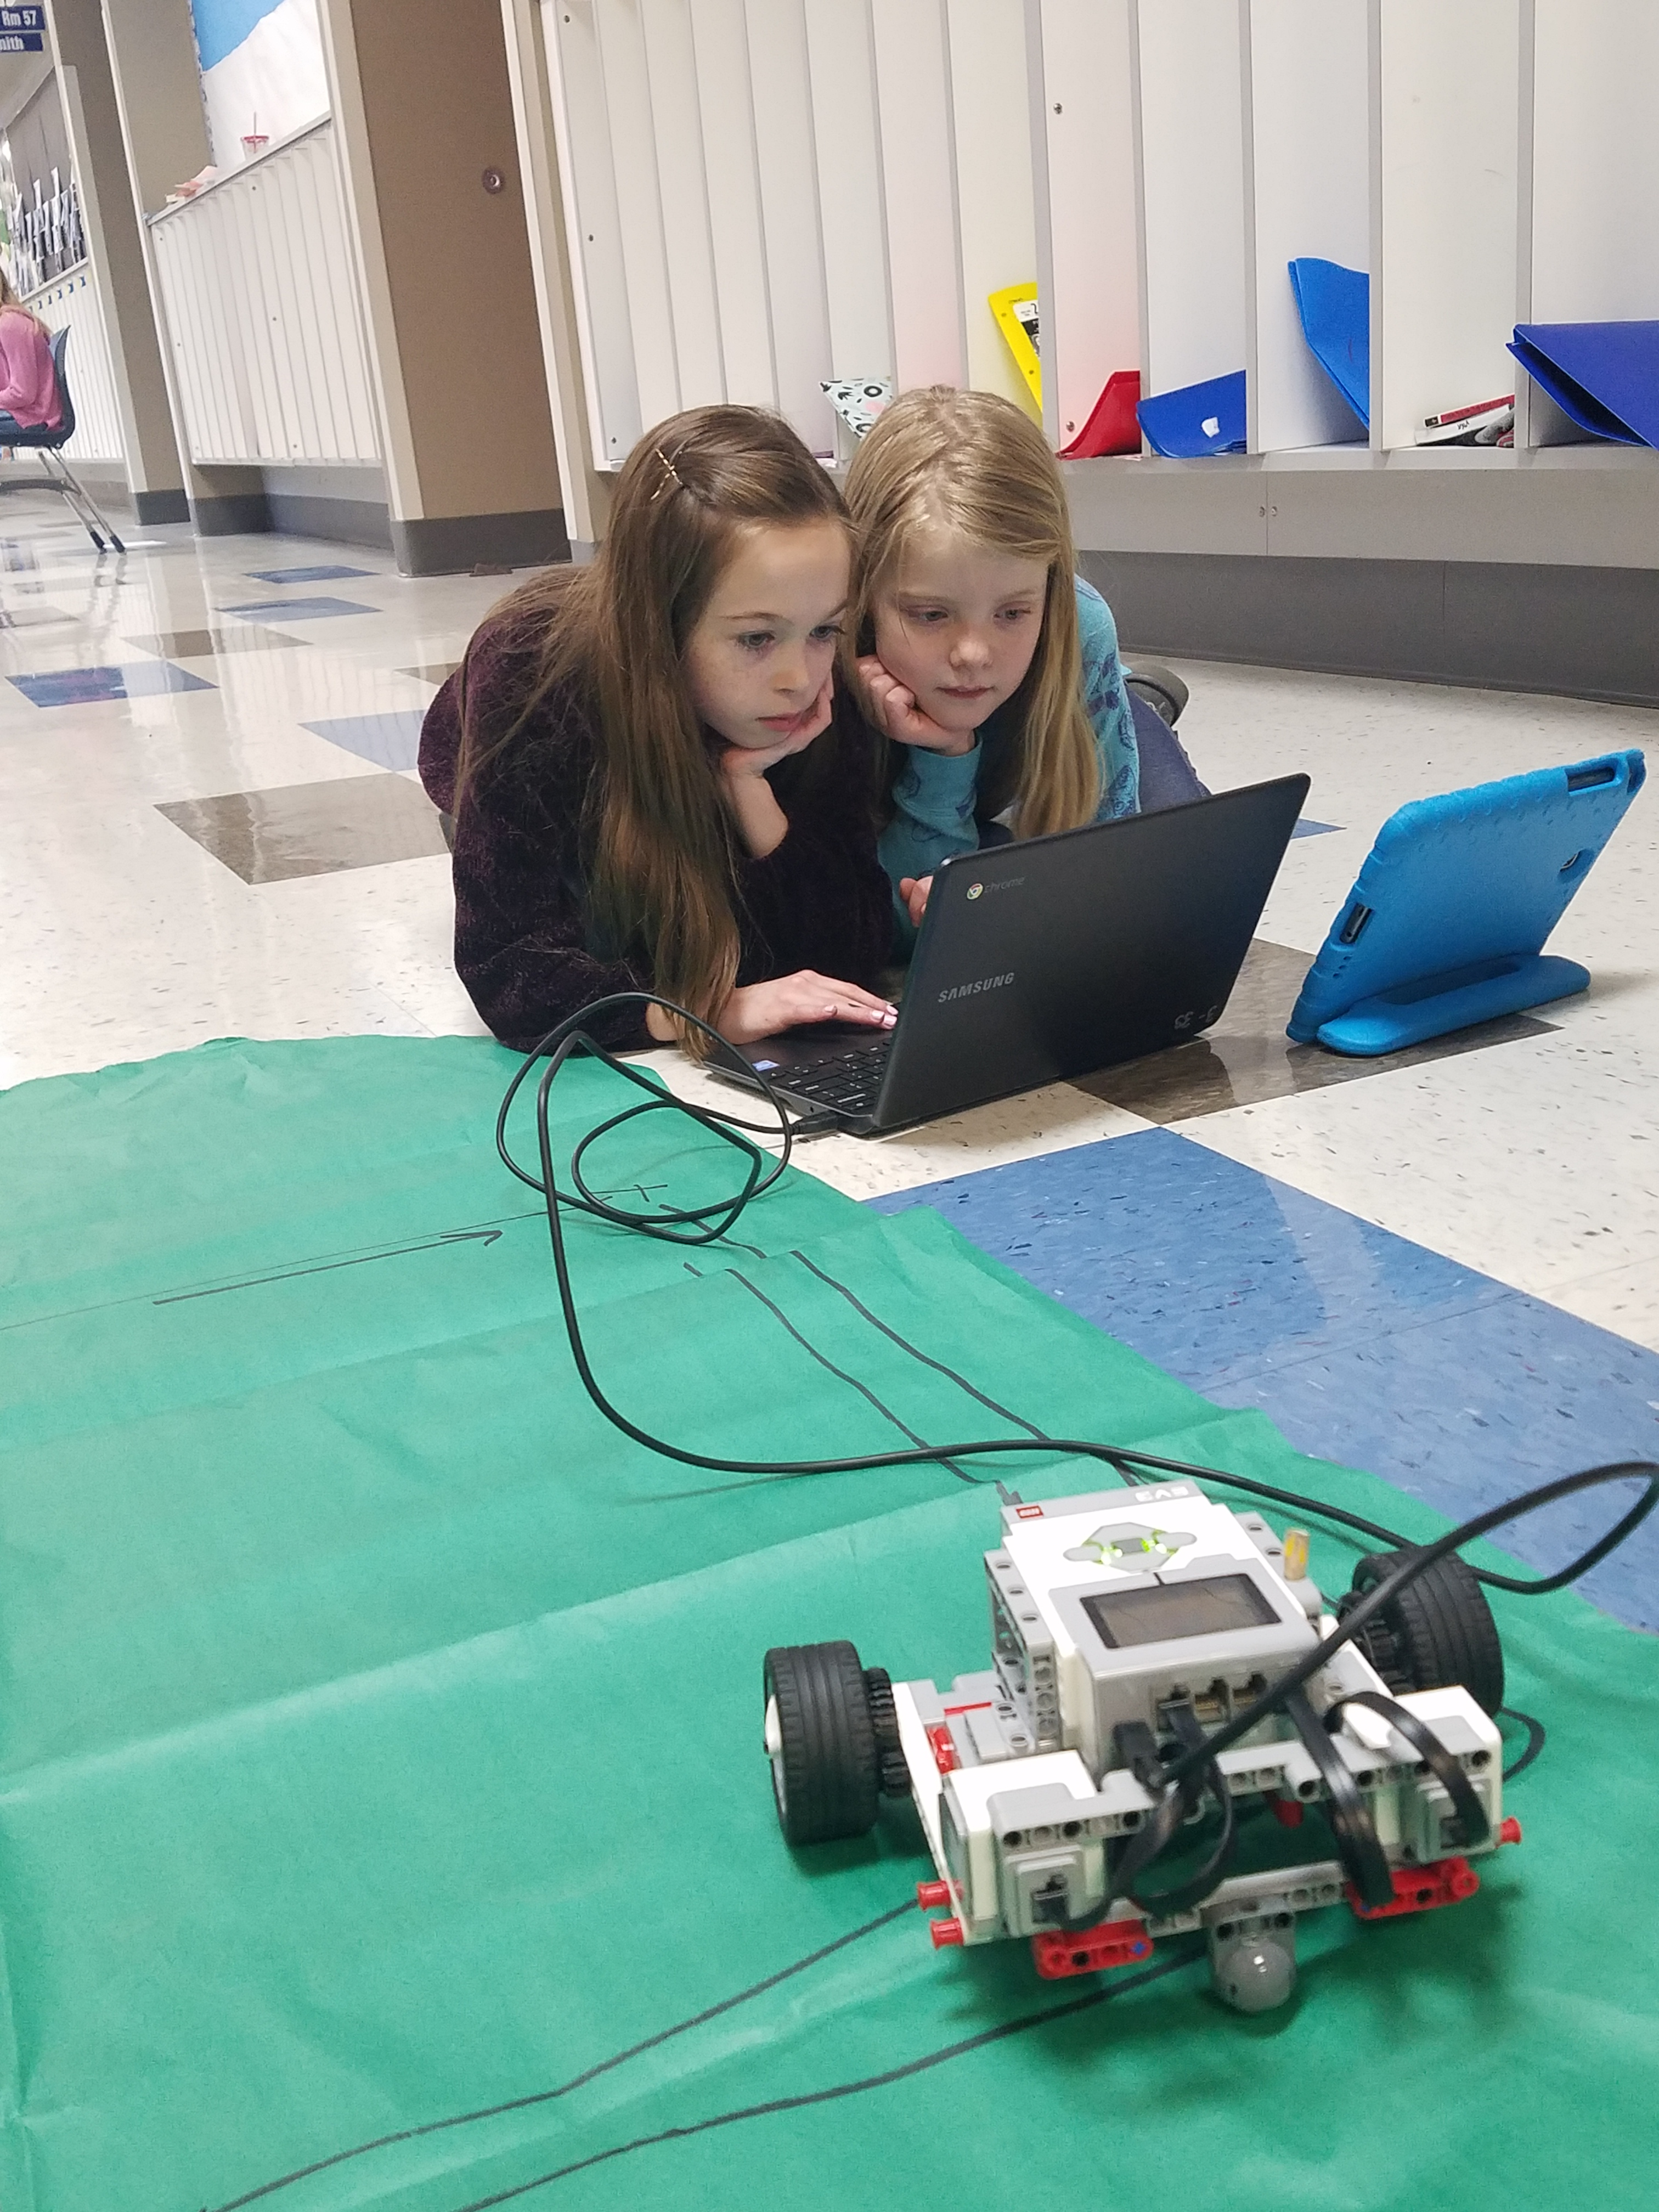 4th Grade students show off their robotics project.